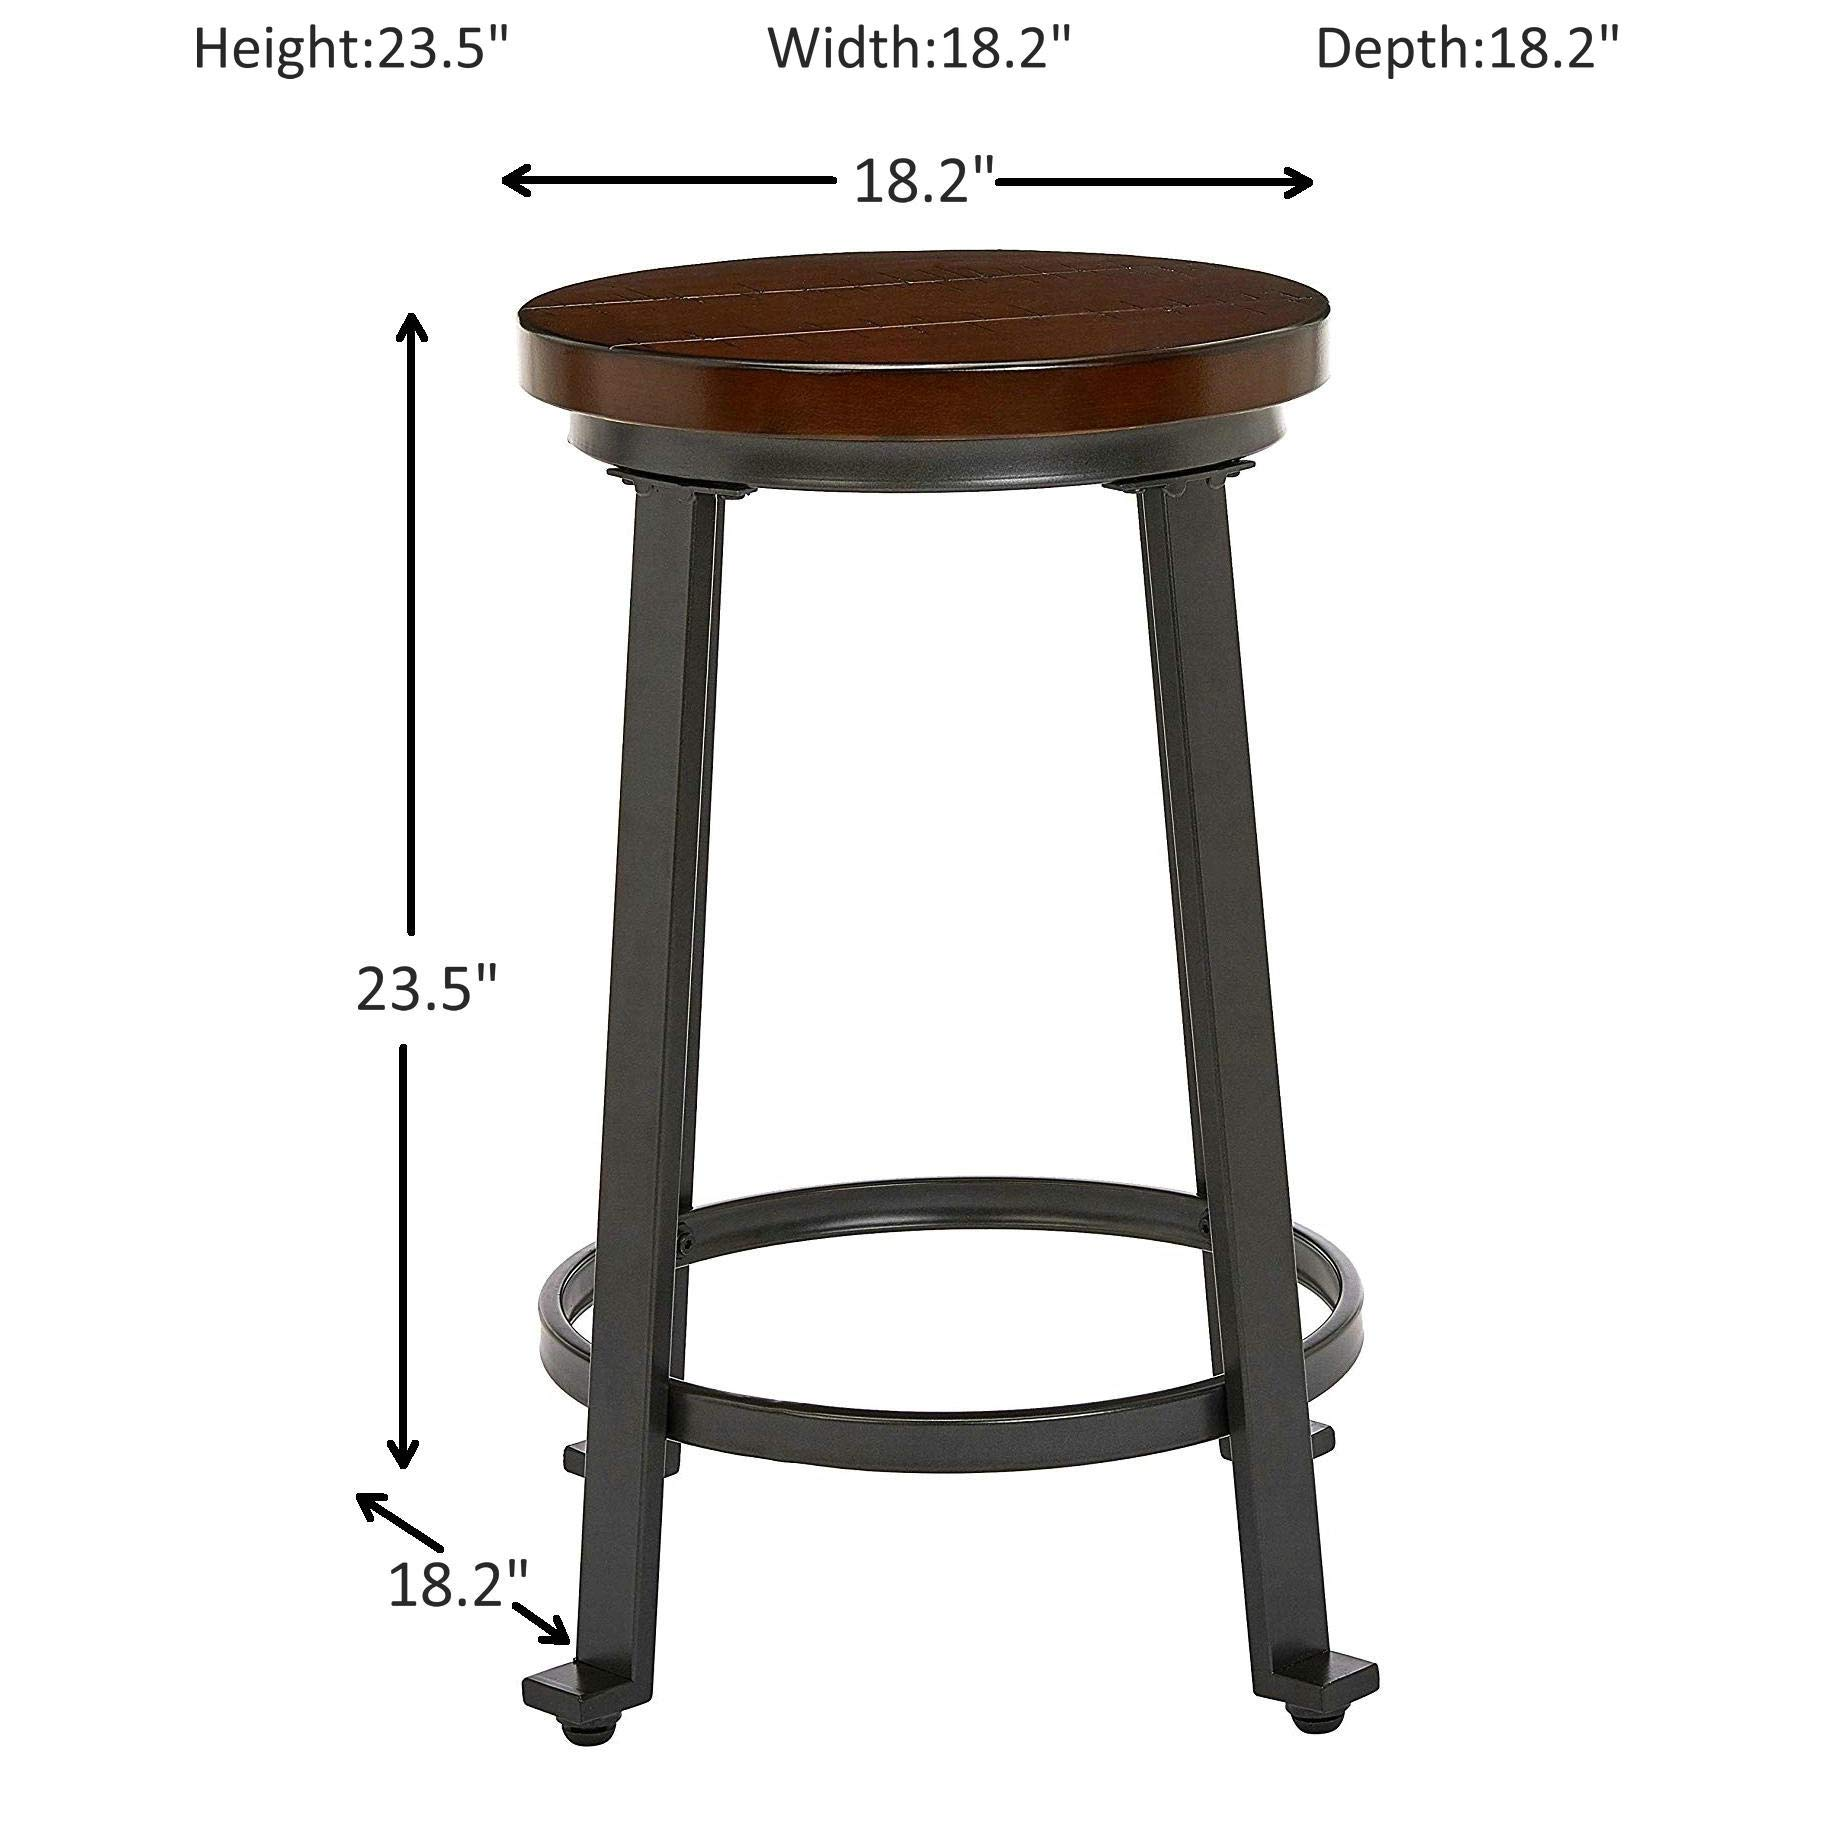 Ball & Cast Fremont Metal-and-Wood Counter-Height Bar Stool, Set